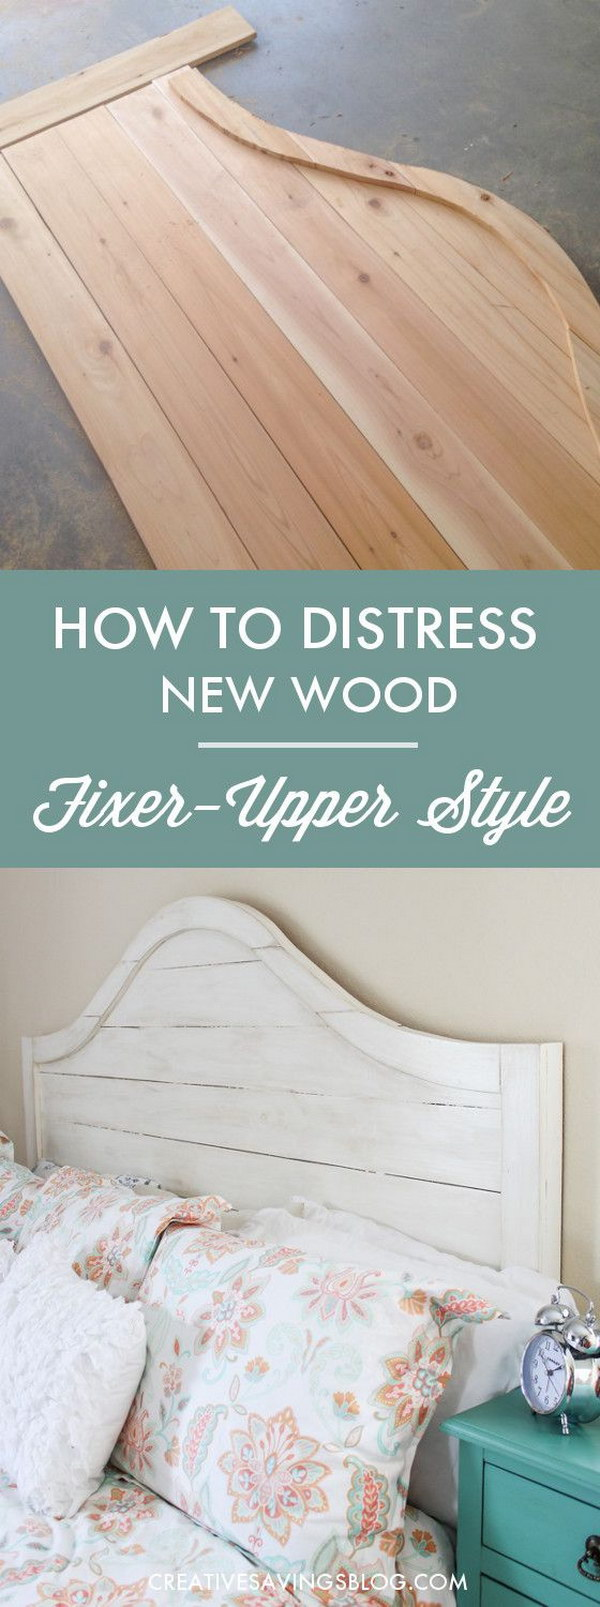 Distress New Wood To Shabby Chic Style Headboard